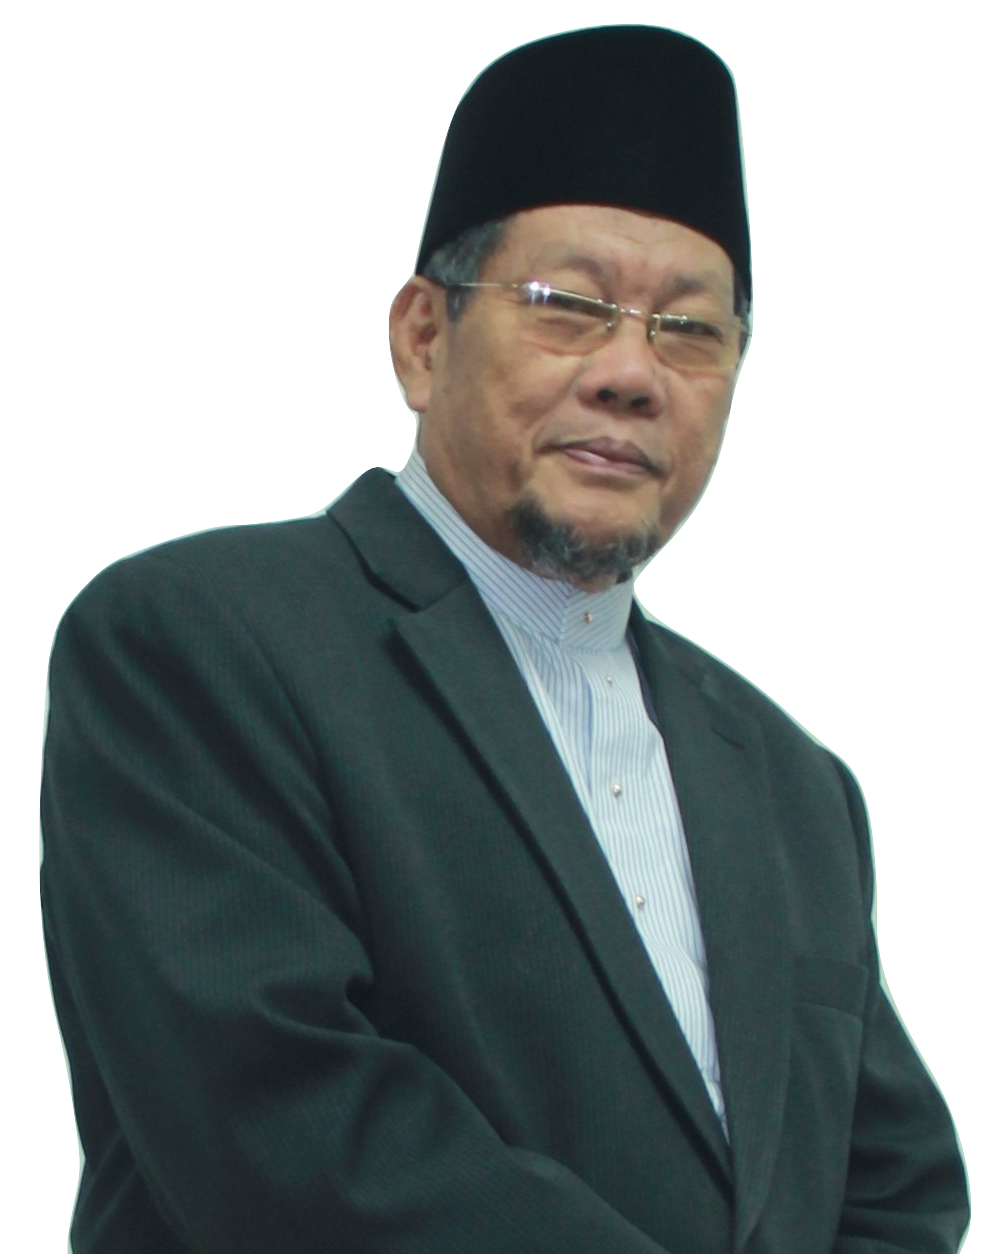 dato mufti burned